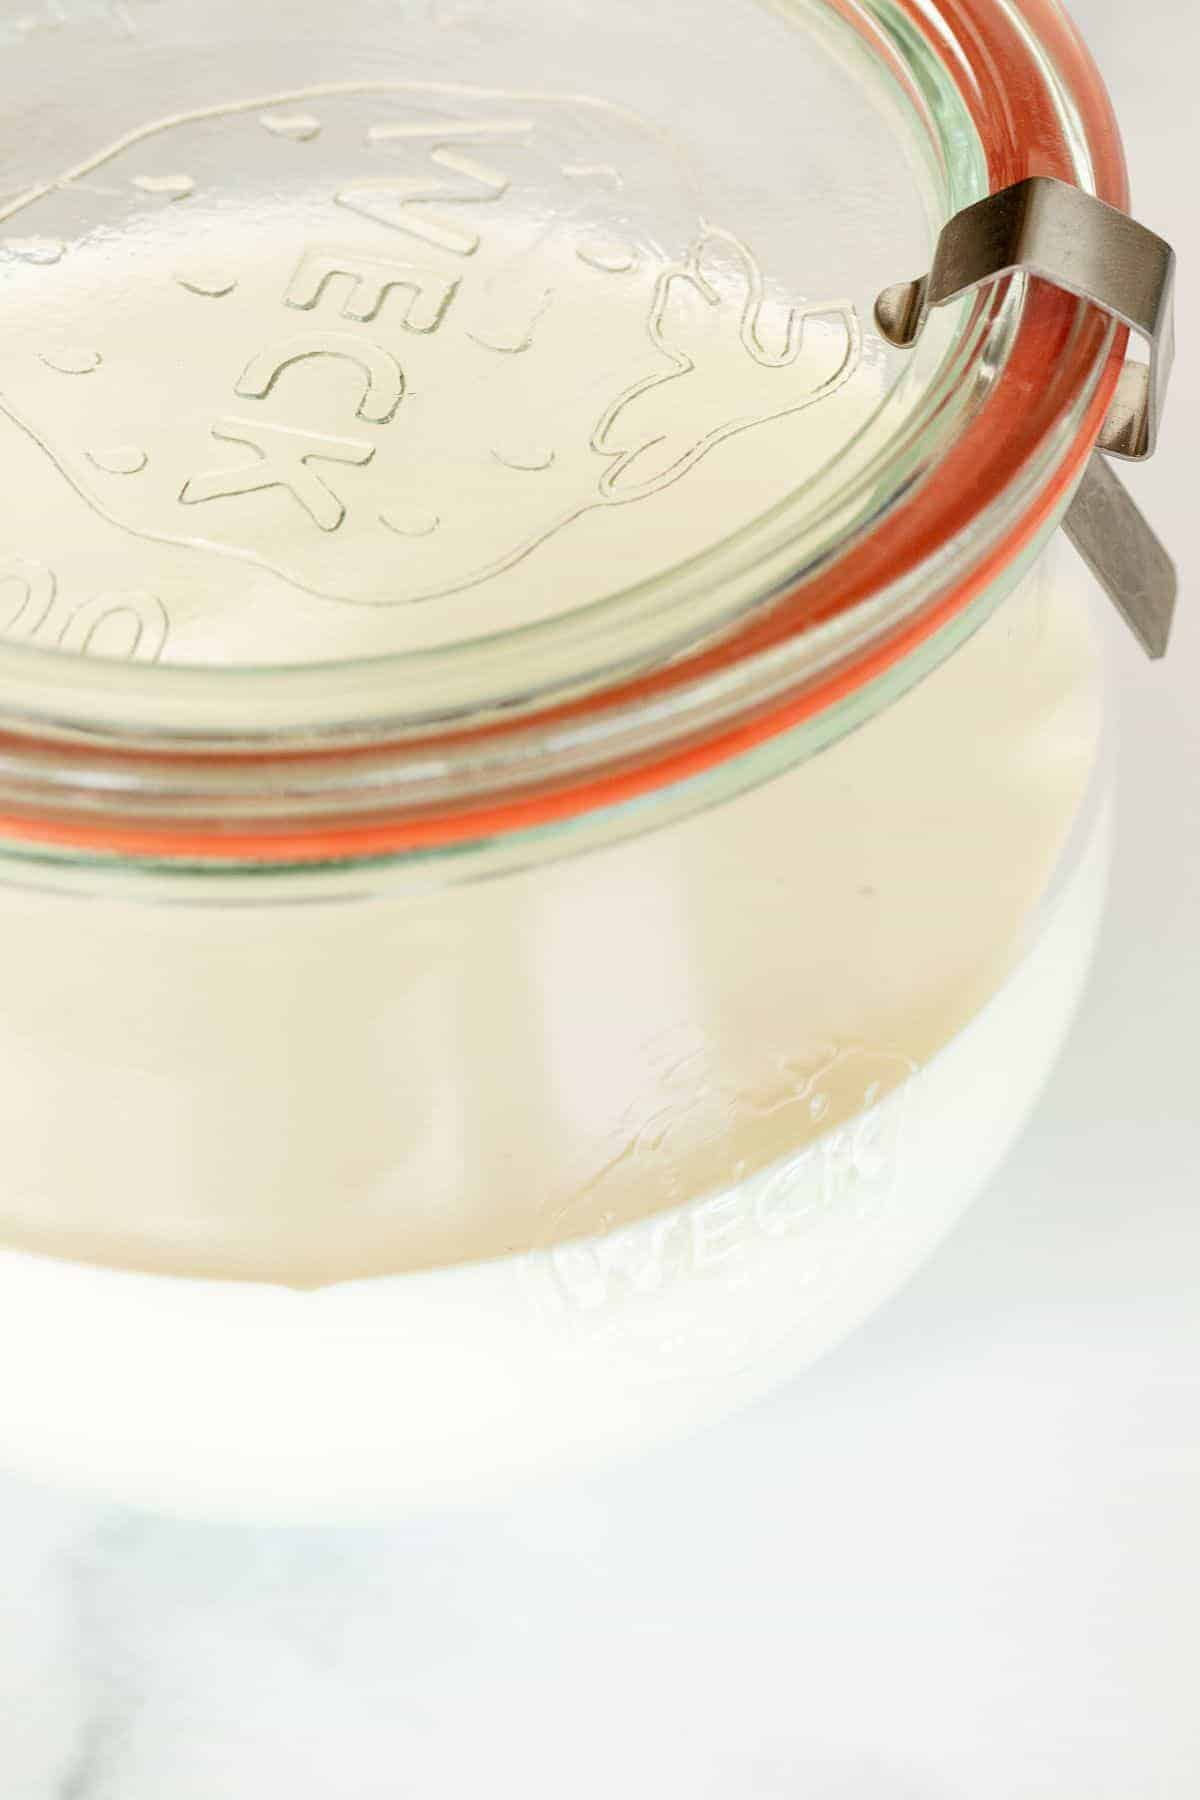 creme fraiche substitute in a clear glass weck jar with lid.